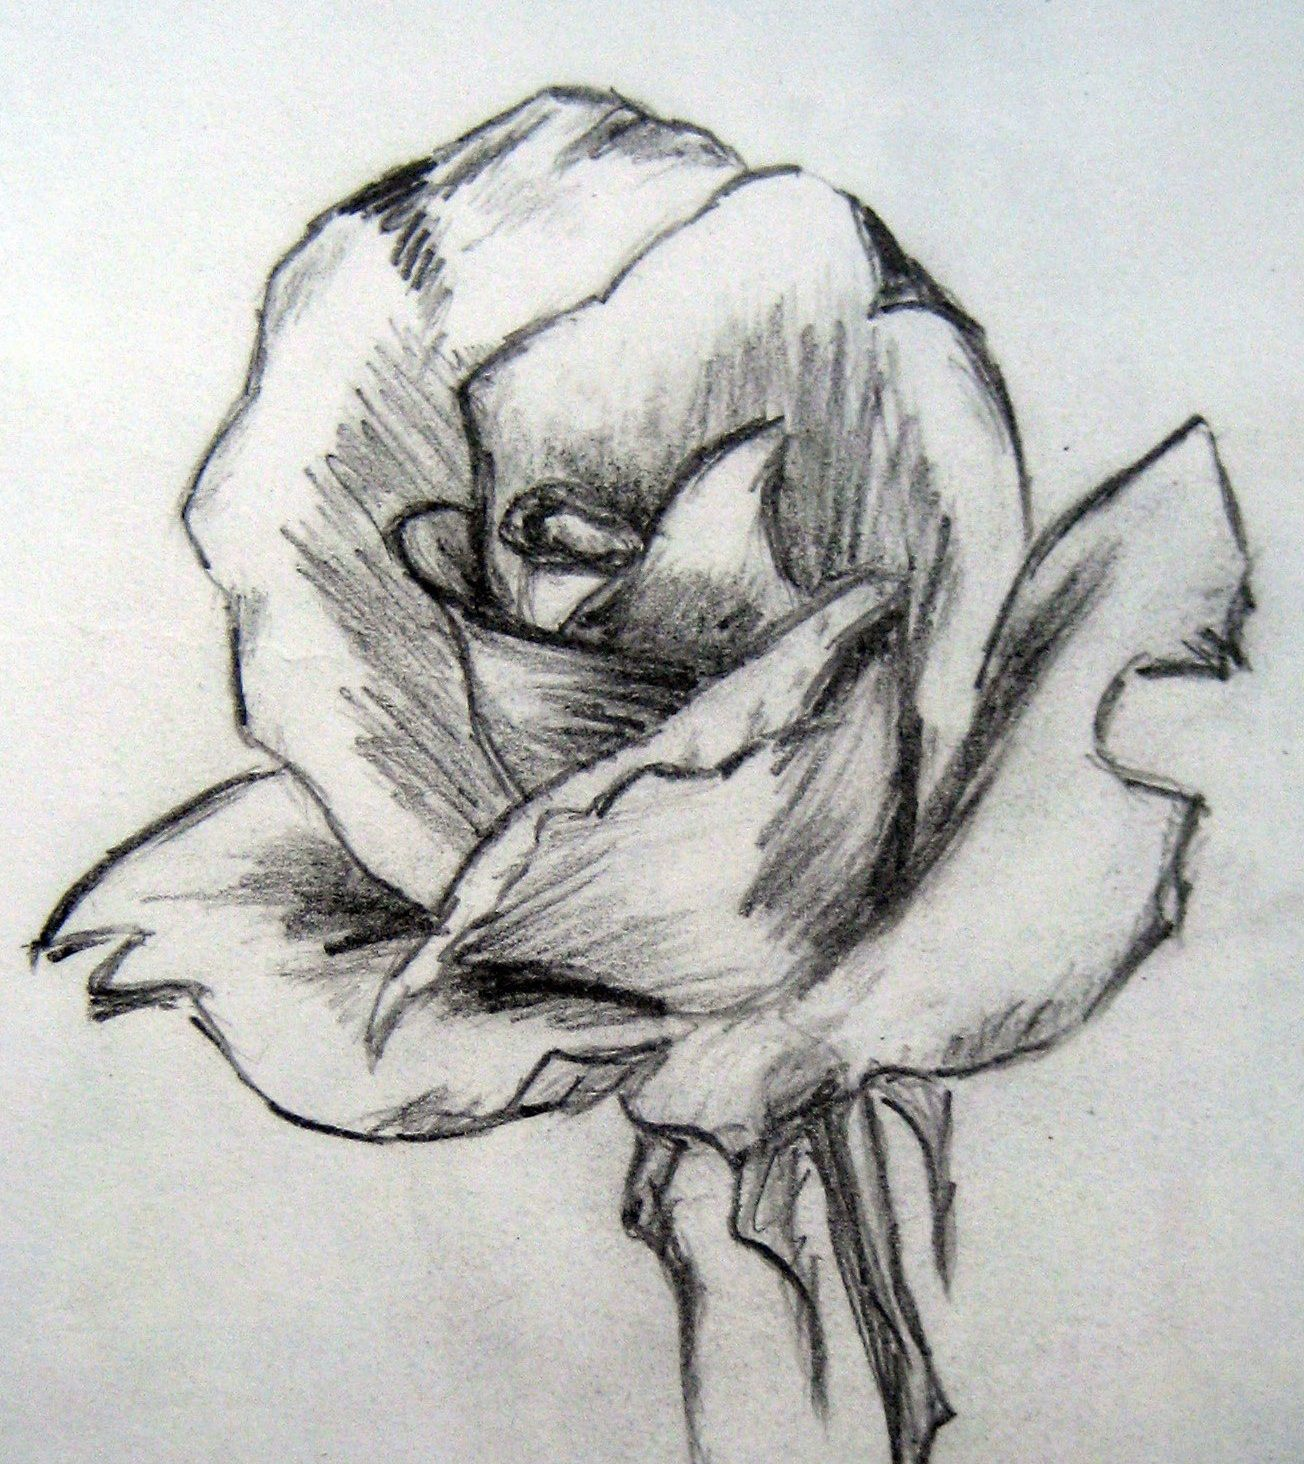 Easy pencil drawings of flowers art by prem • com sketch and painting of a rose